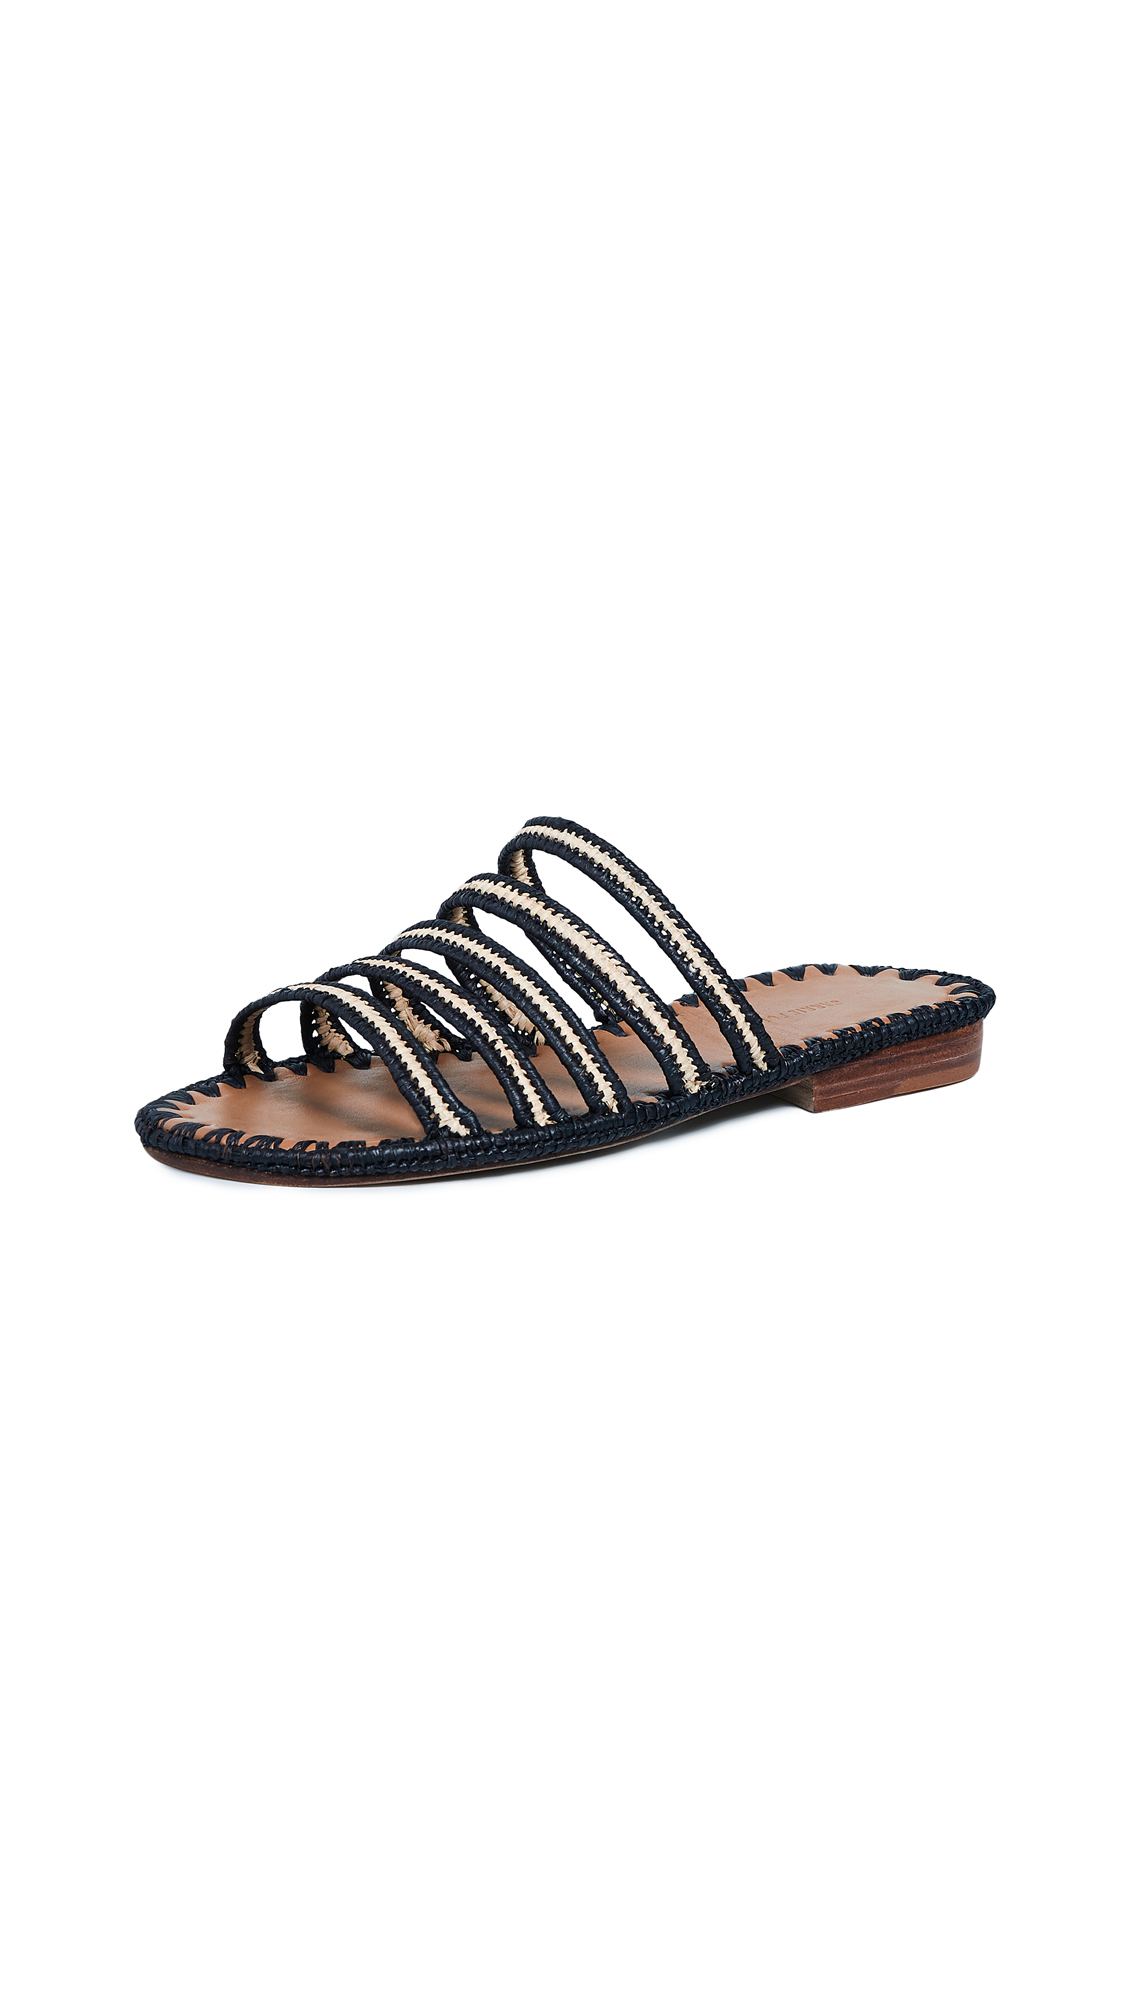 Carrie Forbes Asmaa Multiband Slides - Noir/Natural